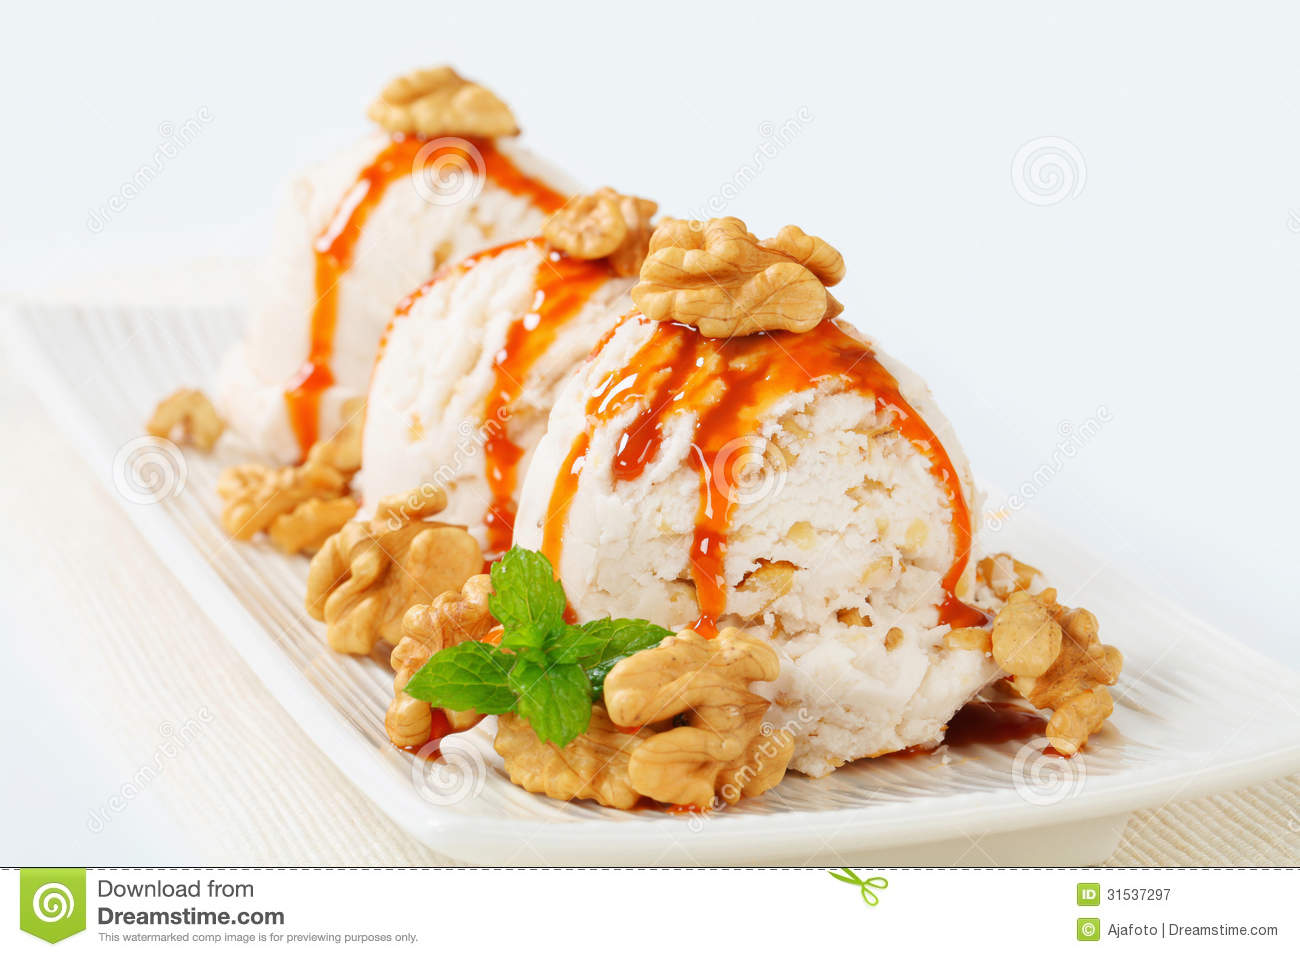 Walnut Ice Cream With Caramel Sauce Royalty Free Stock Photography.